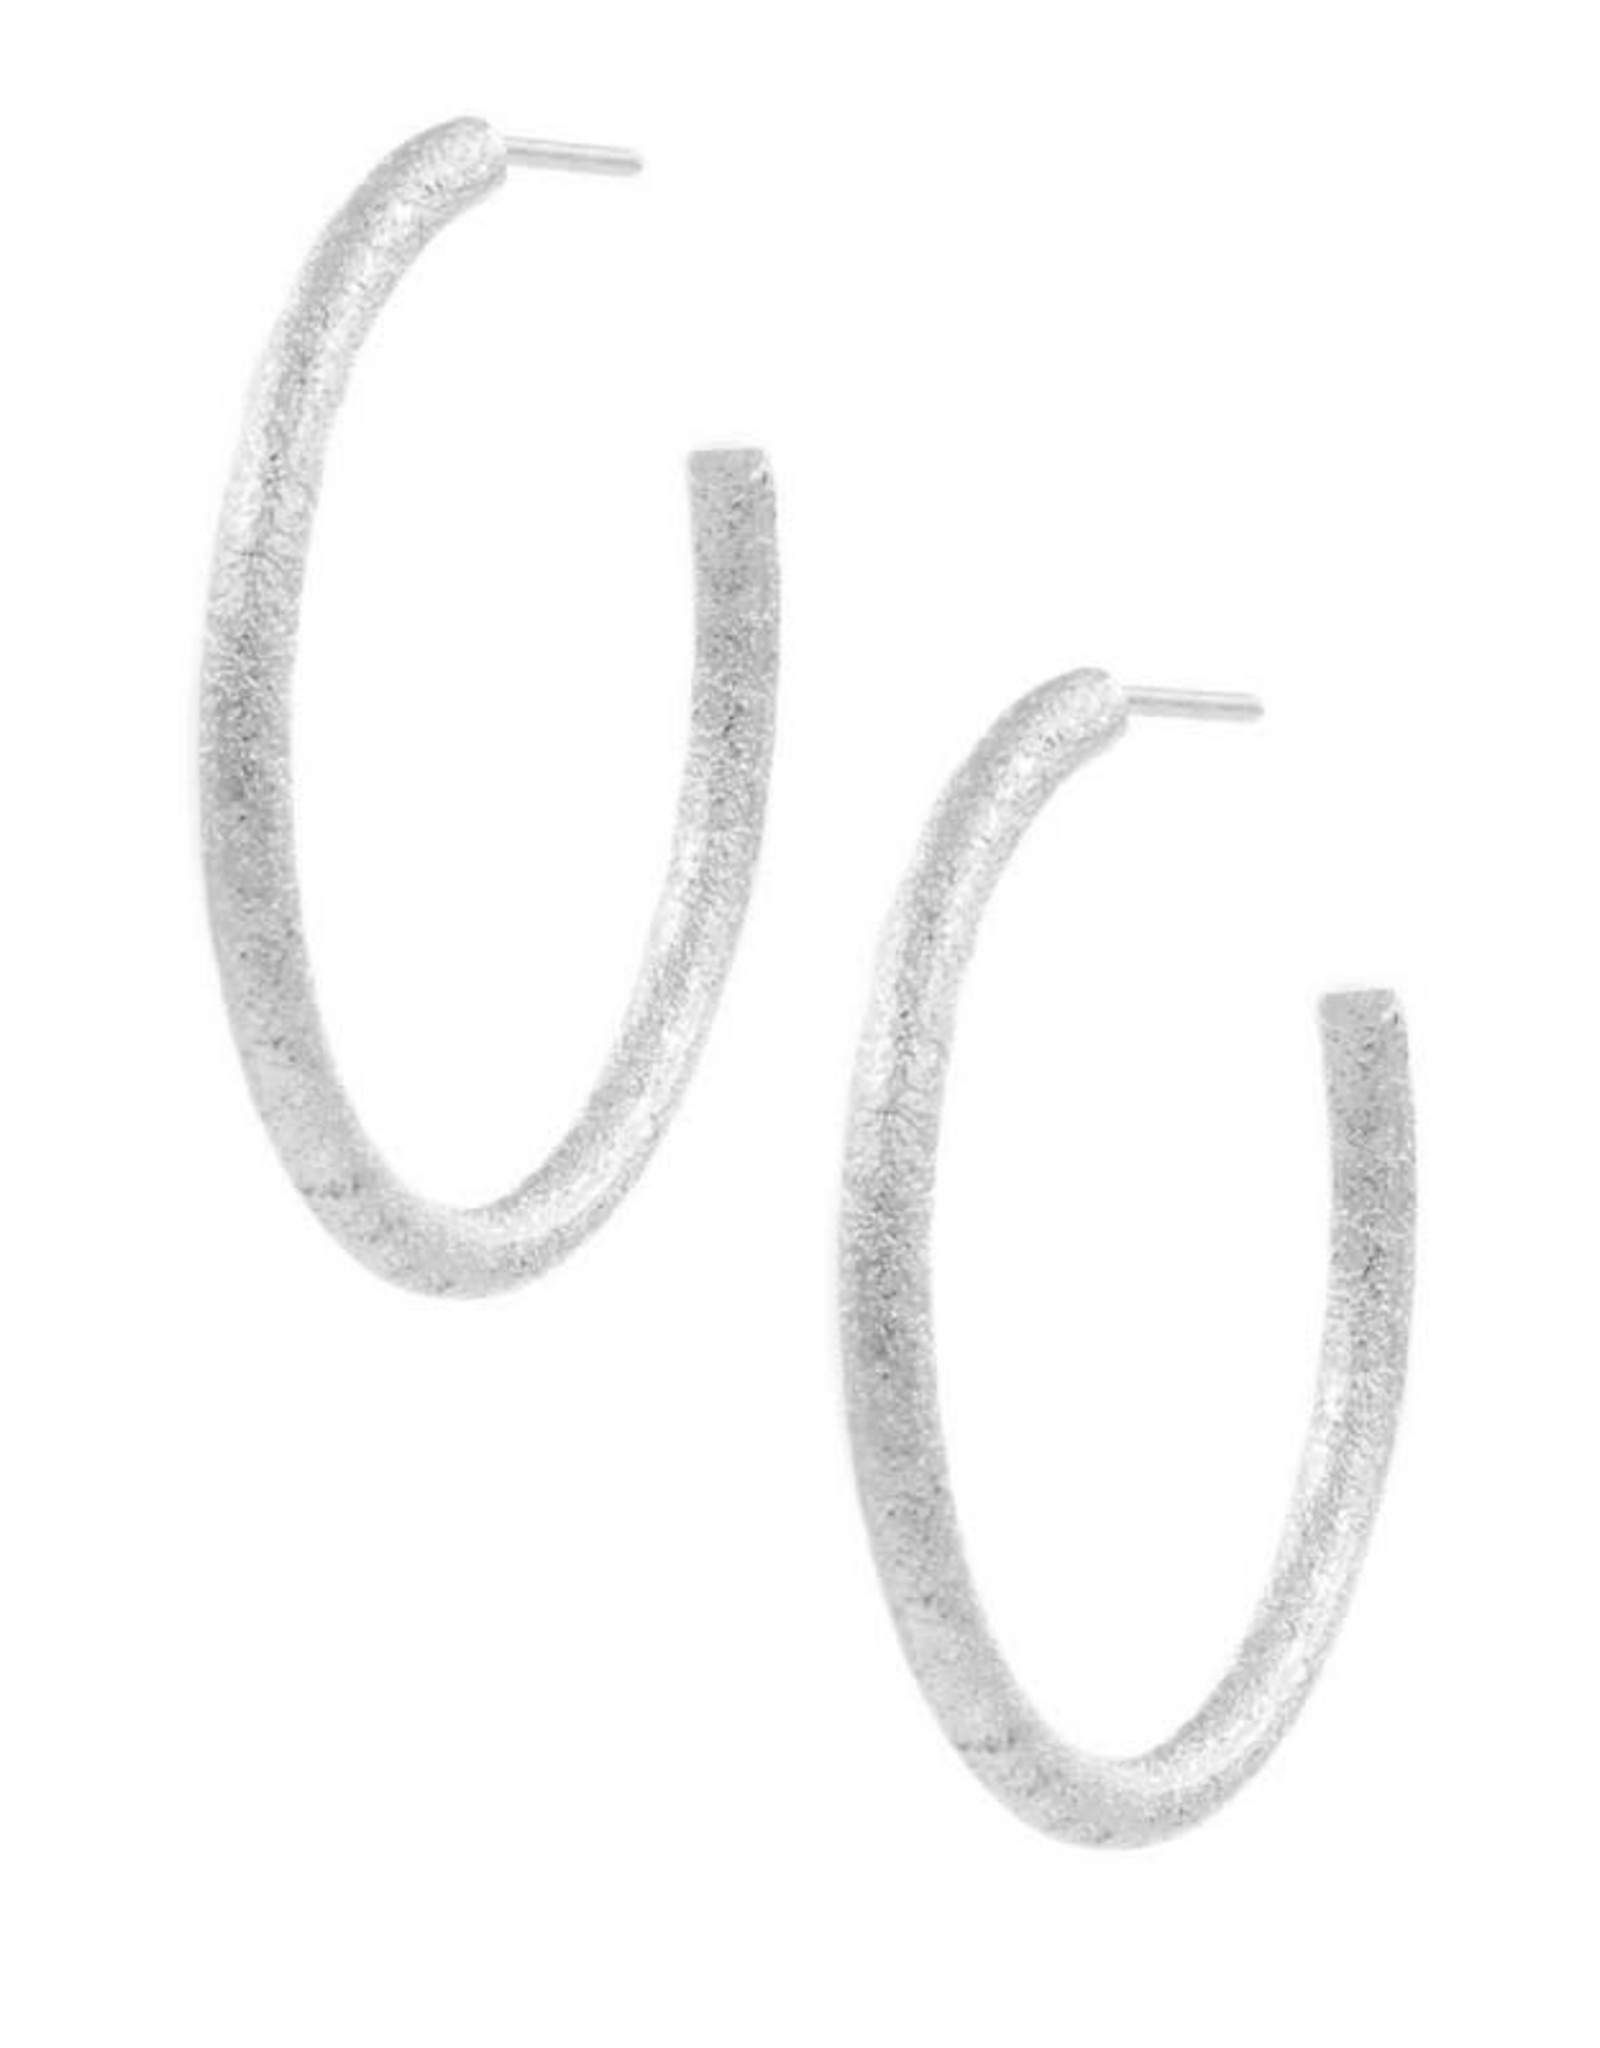 The Ritzy Gypsy KHLOE Sparkle Hoops